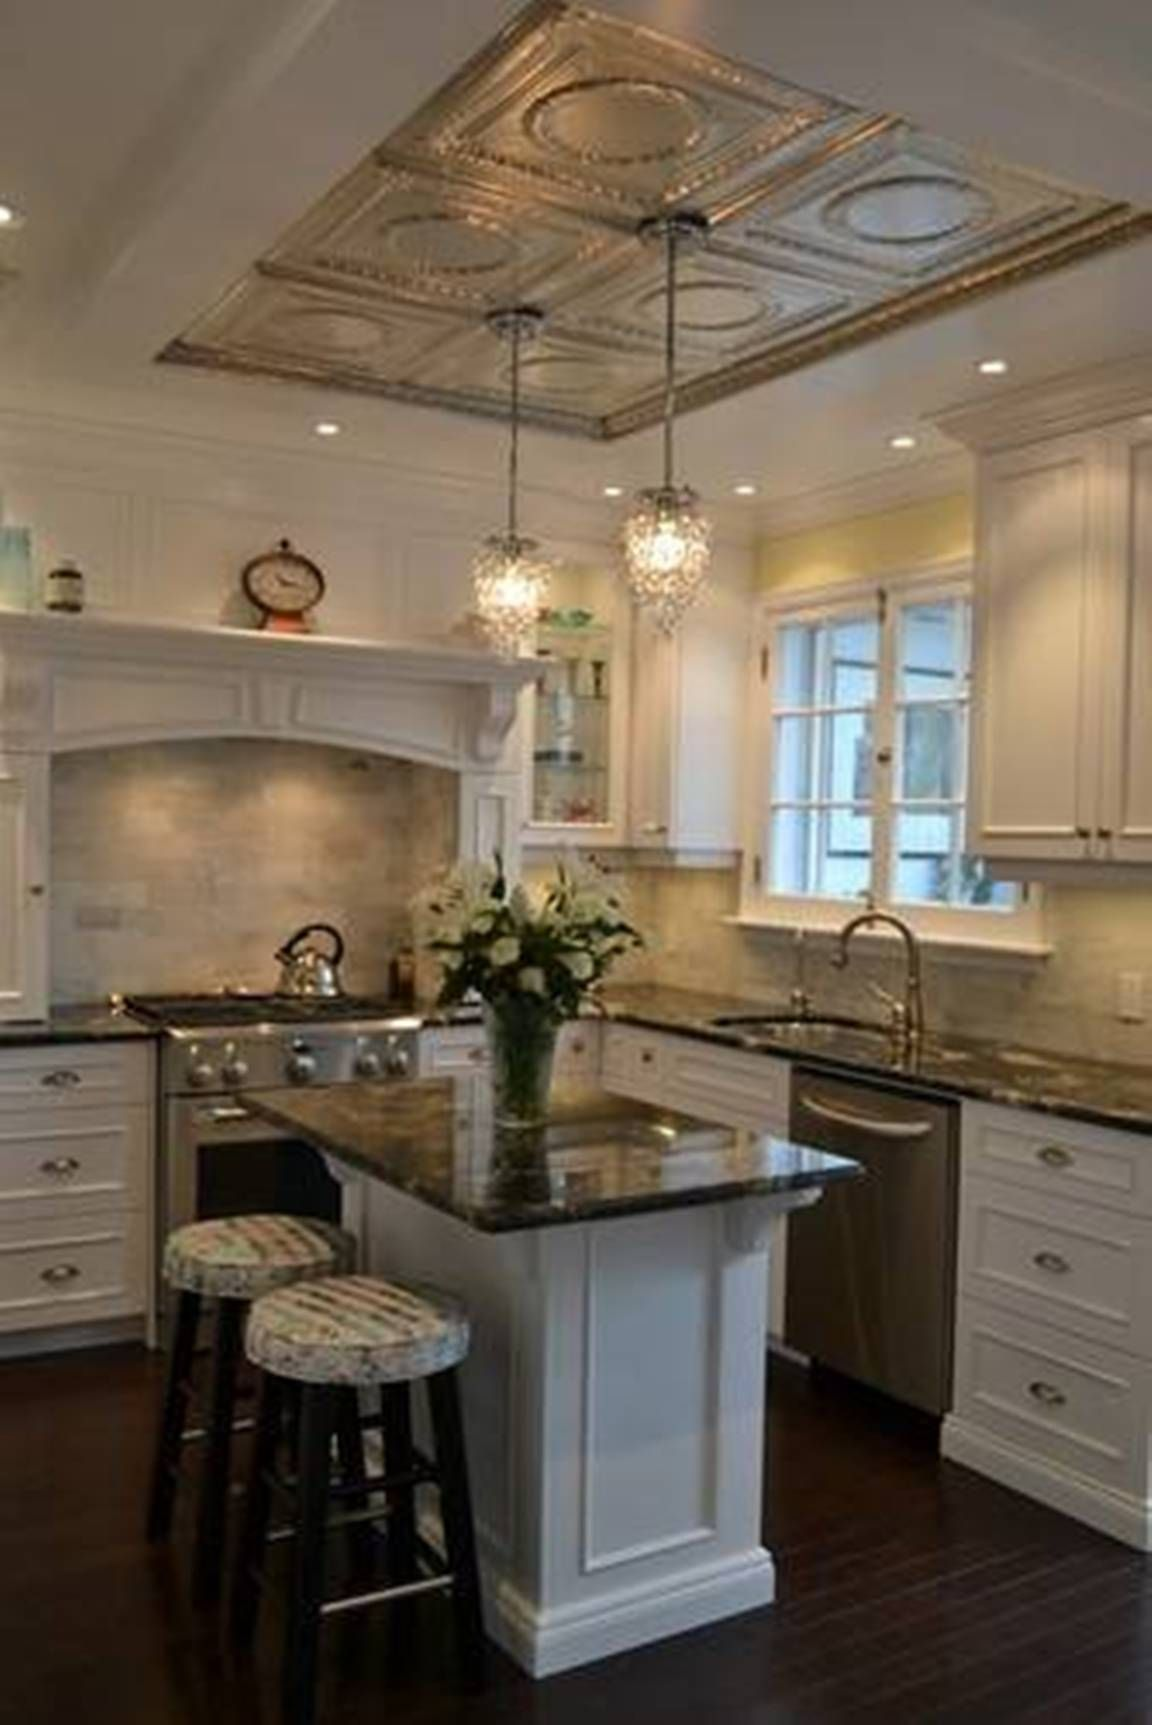 elegant cabinets lighting kitchen. Kitchen , Elegant Victorian Style Kitchens : Modern With Classy Ceiling And Small Pendants White Cabinets Black Granite Lighting I